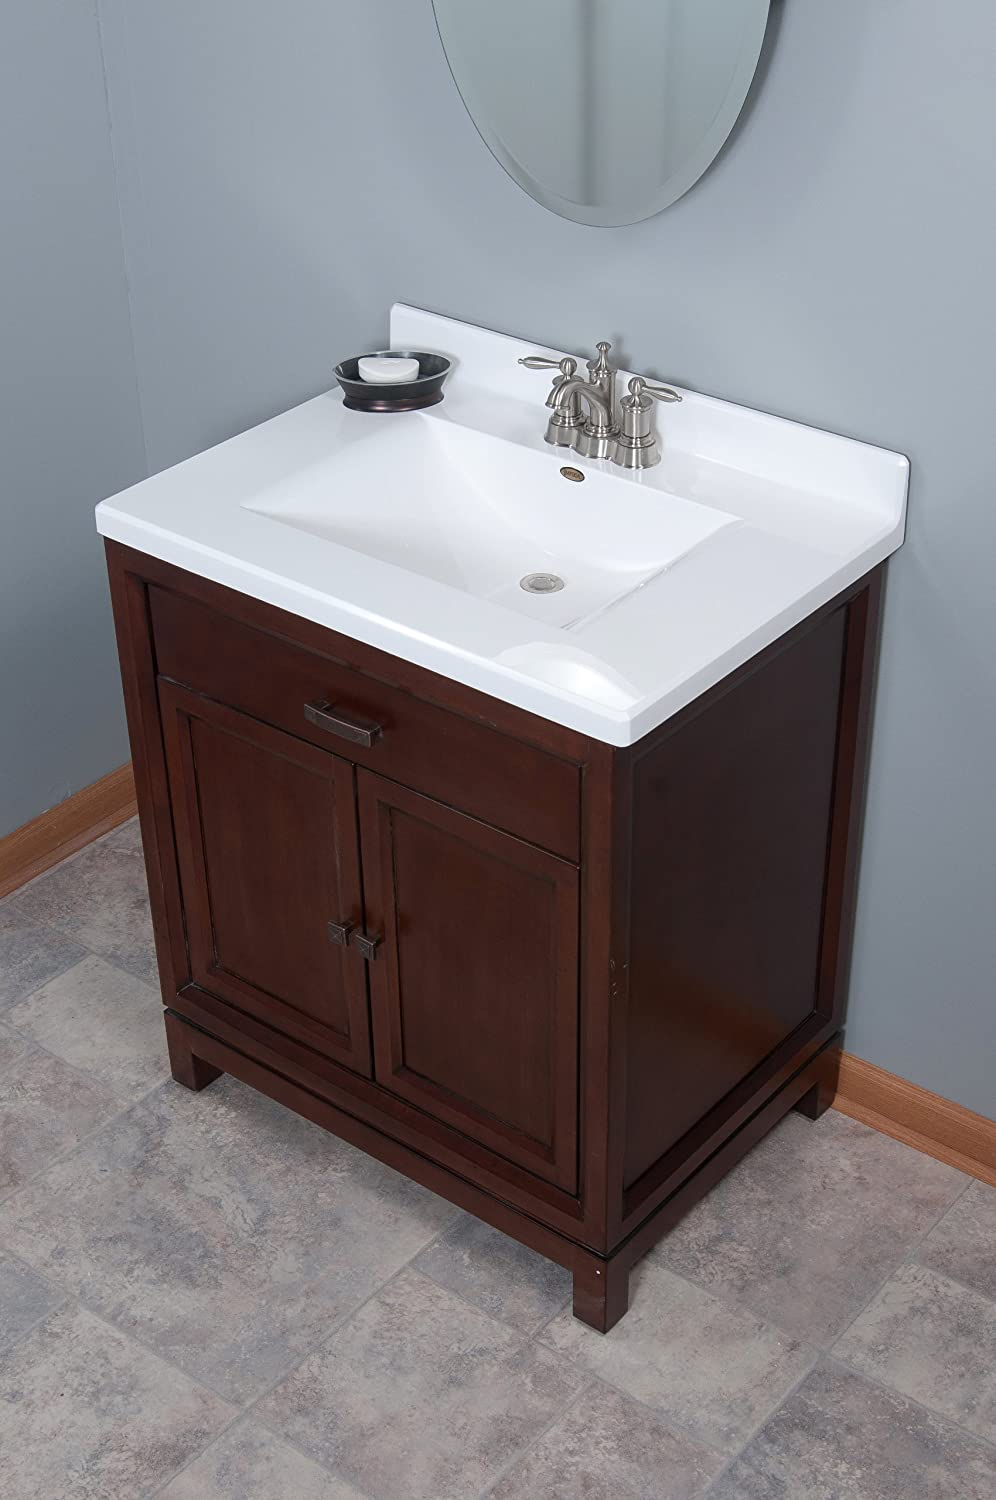 Imperial FW3122SPW Center Wave Bowl Bathroom Vanity Top, Solid White Gloss  Finish, 31 Inch Wide By 22 Inch Deep   Vanity Sinks   Amazon.com